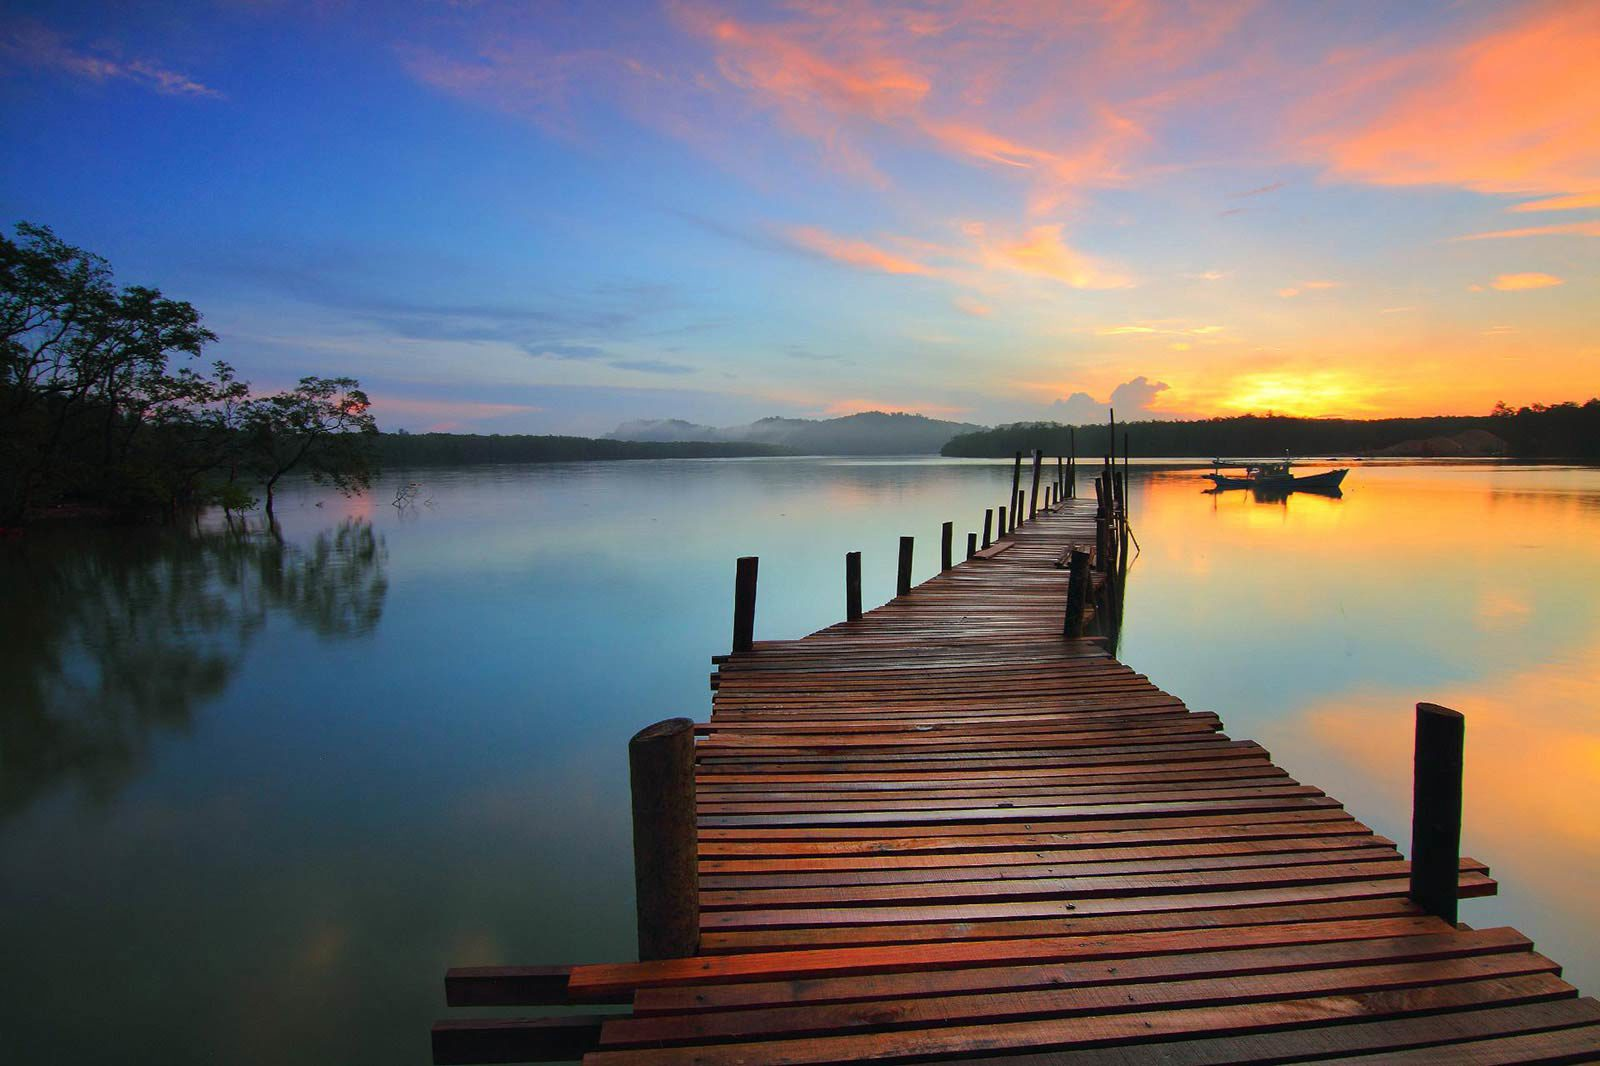 Long wooden pier and small boat on still water reflecting blue and orange sky.